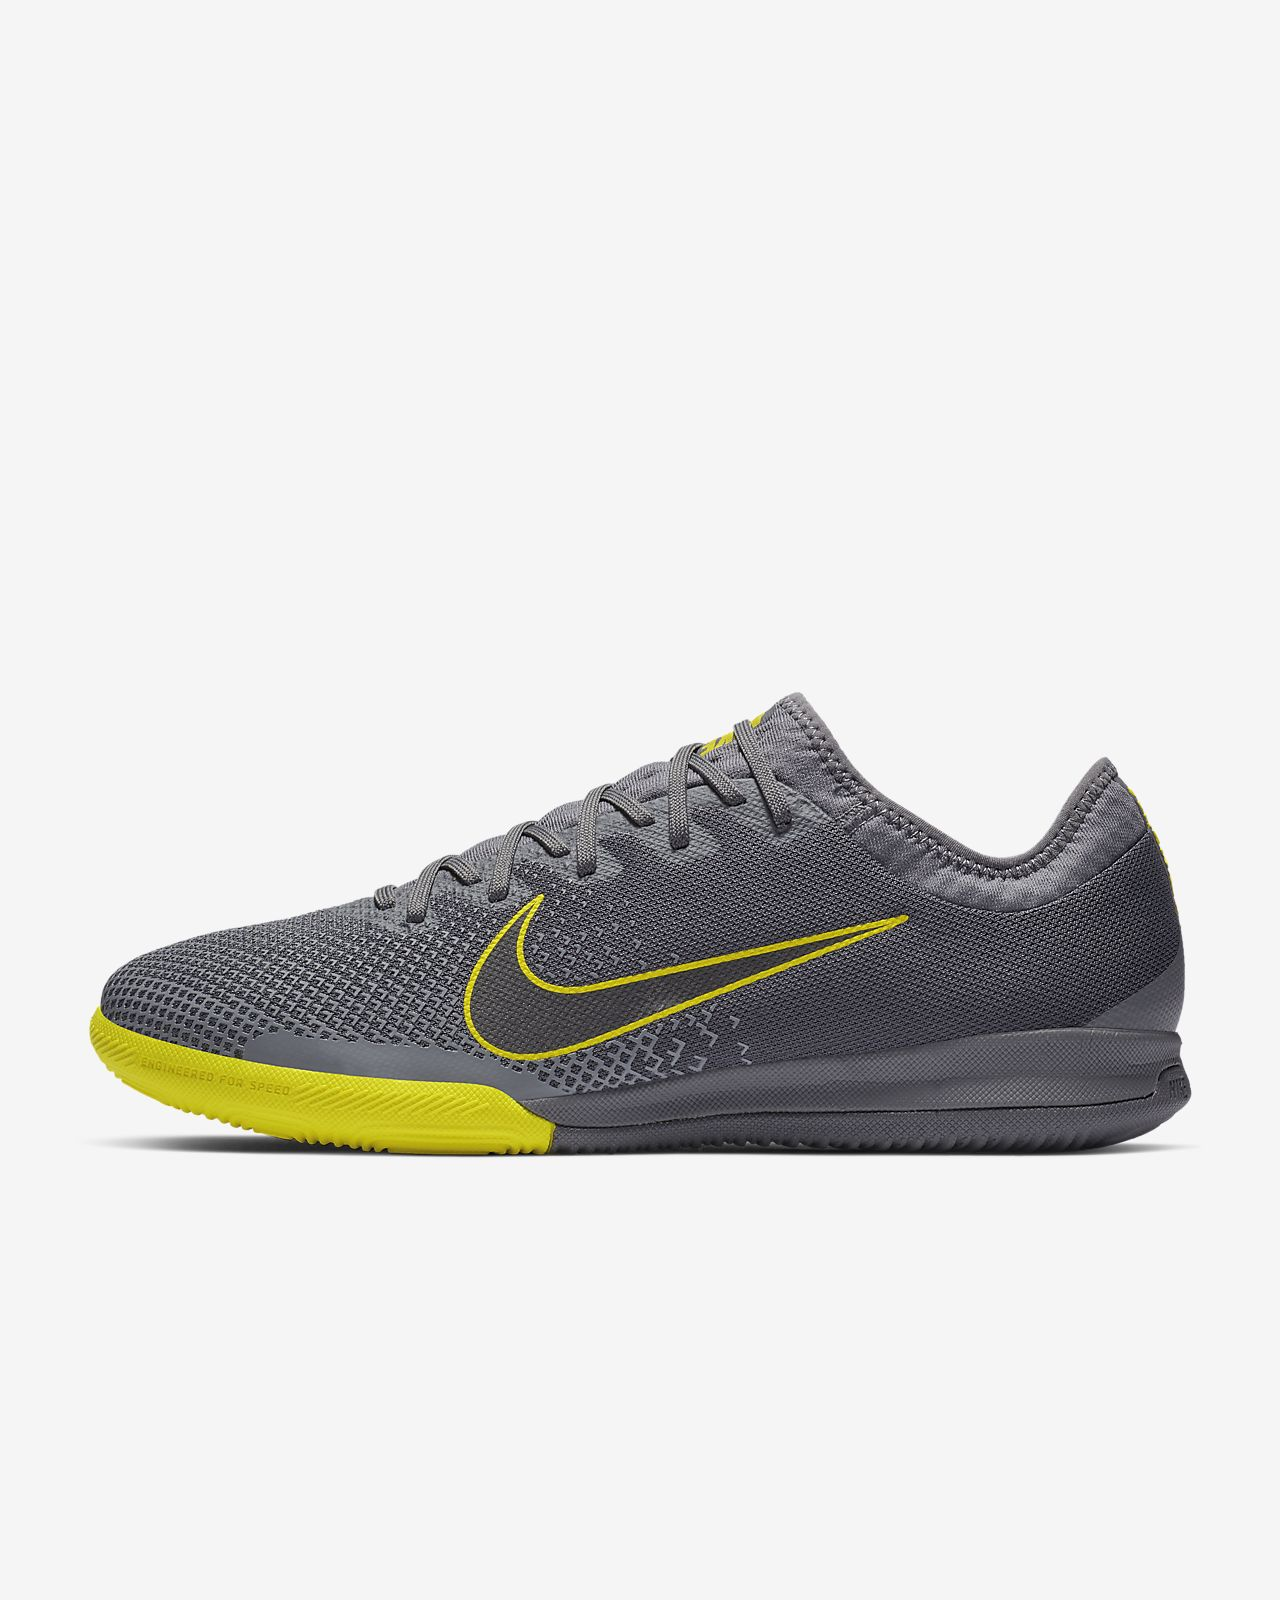 new product 6718a 82406 ... Nike VaporX 12 Pro IC Game Over Indoor-Competition Football Boot